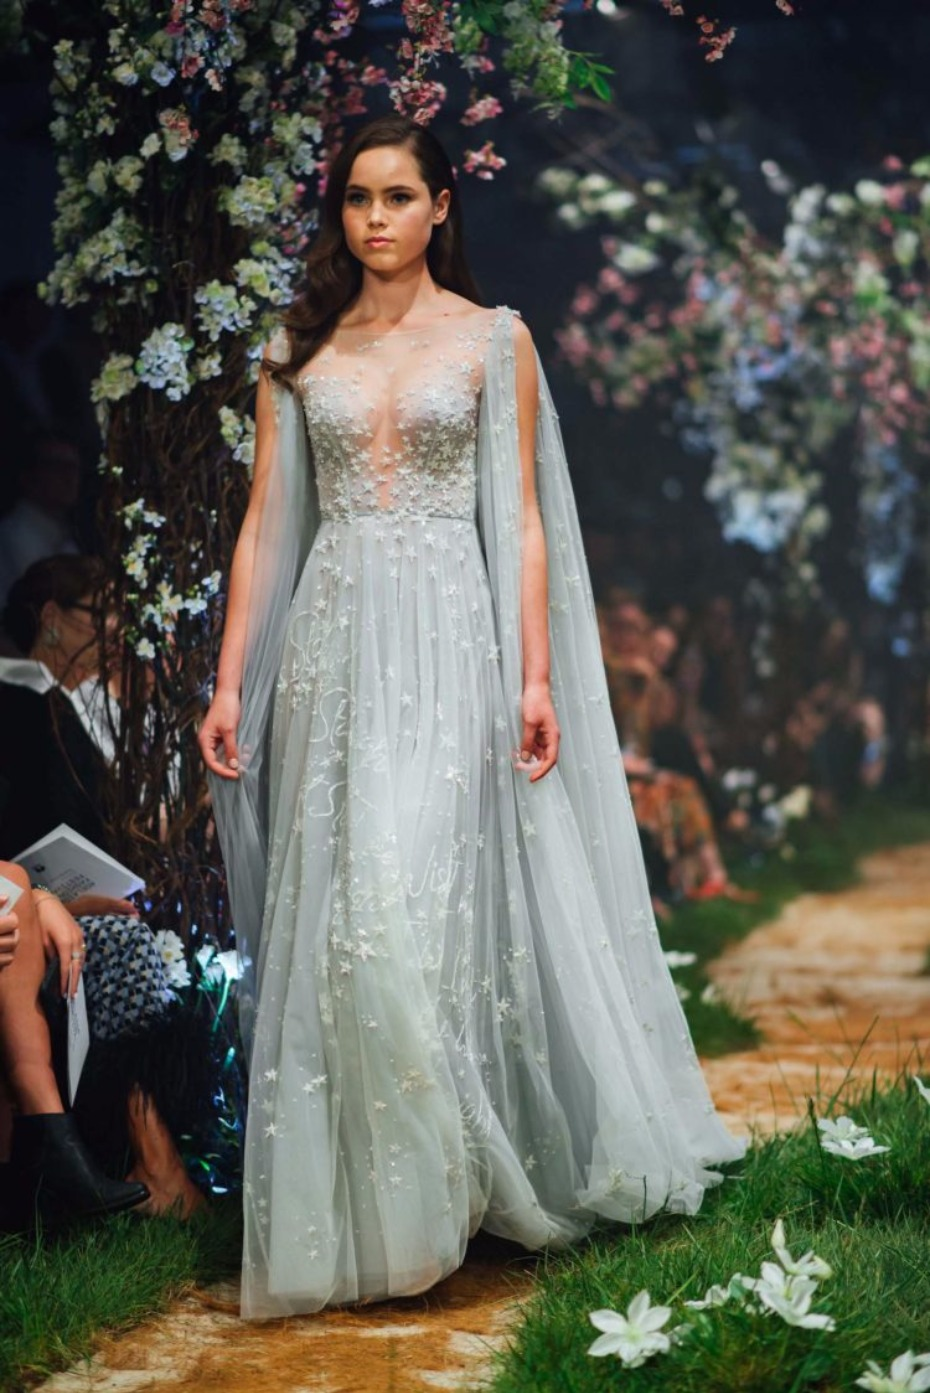 Disney Princess Inspired Wedding Ideas Dress By Paolo Sebastian